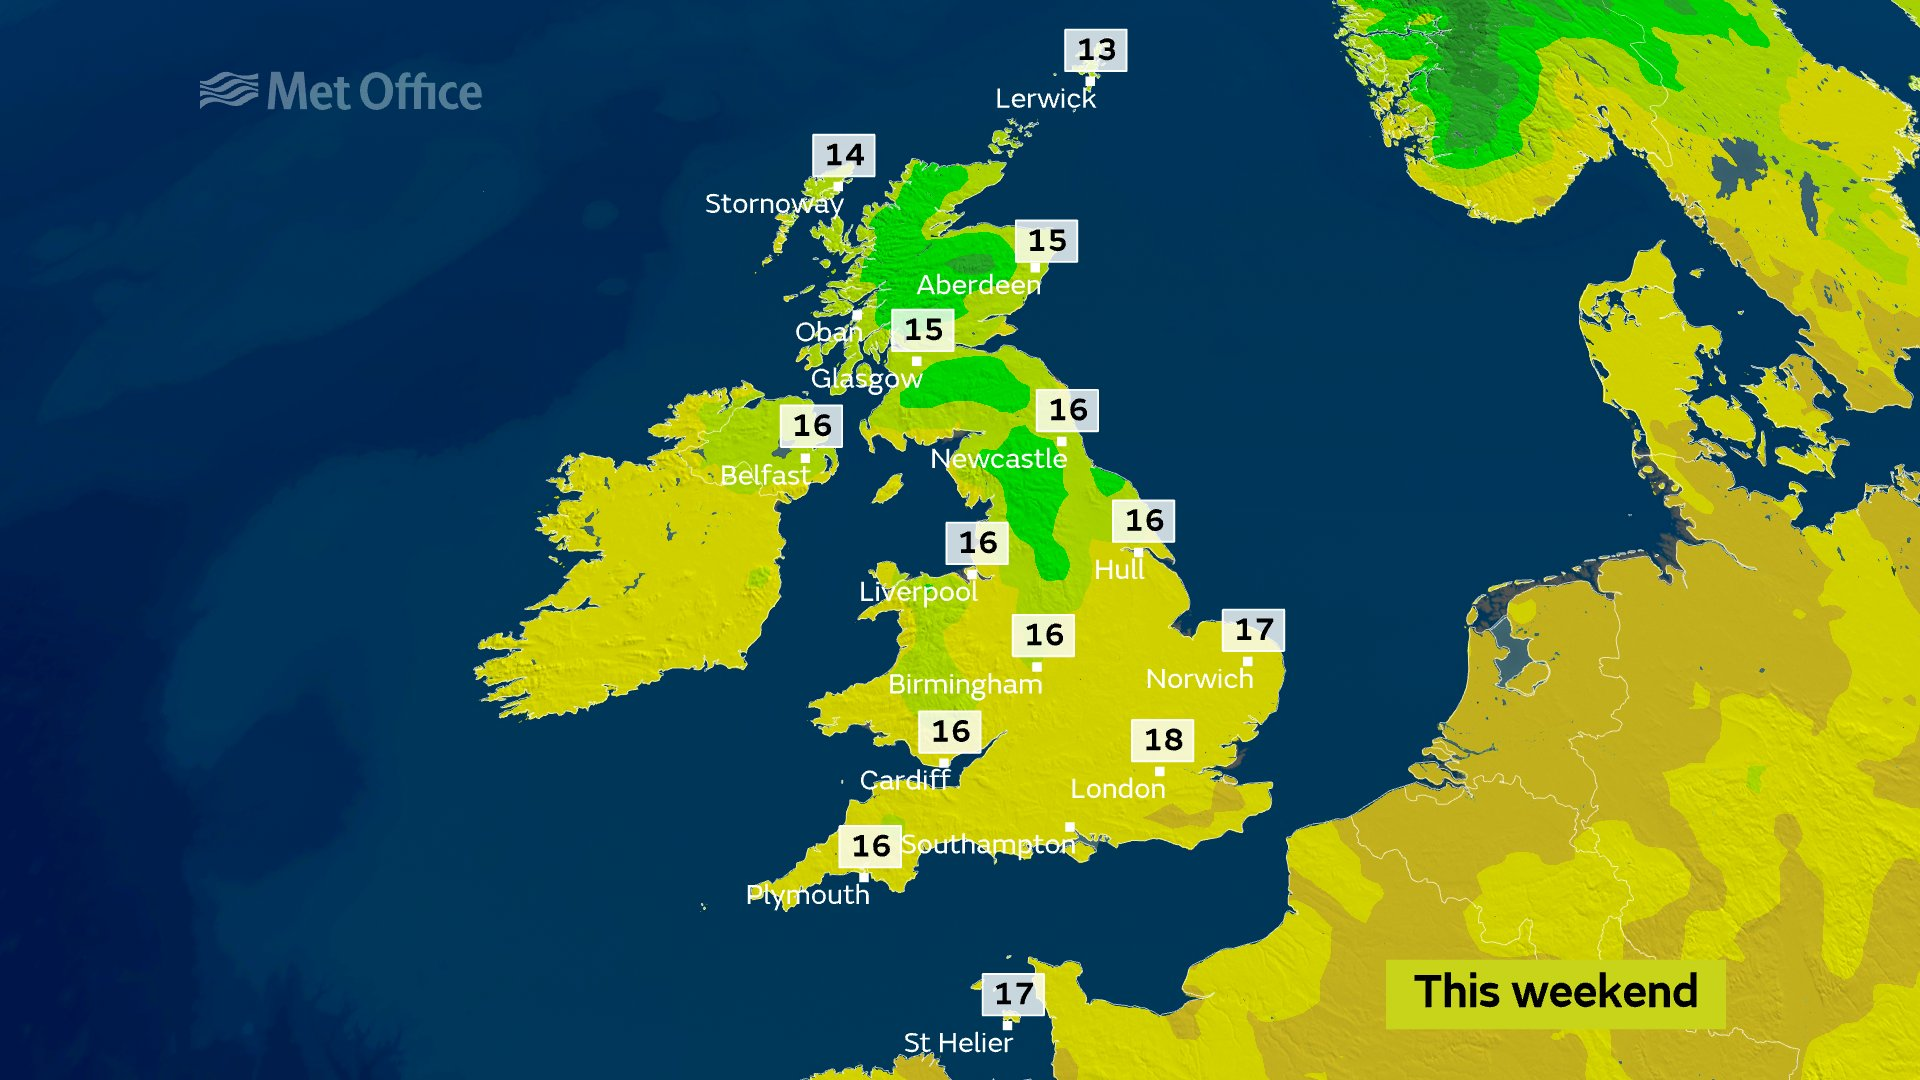 The scorching weather is not expected to last into the weekend the Met Office says